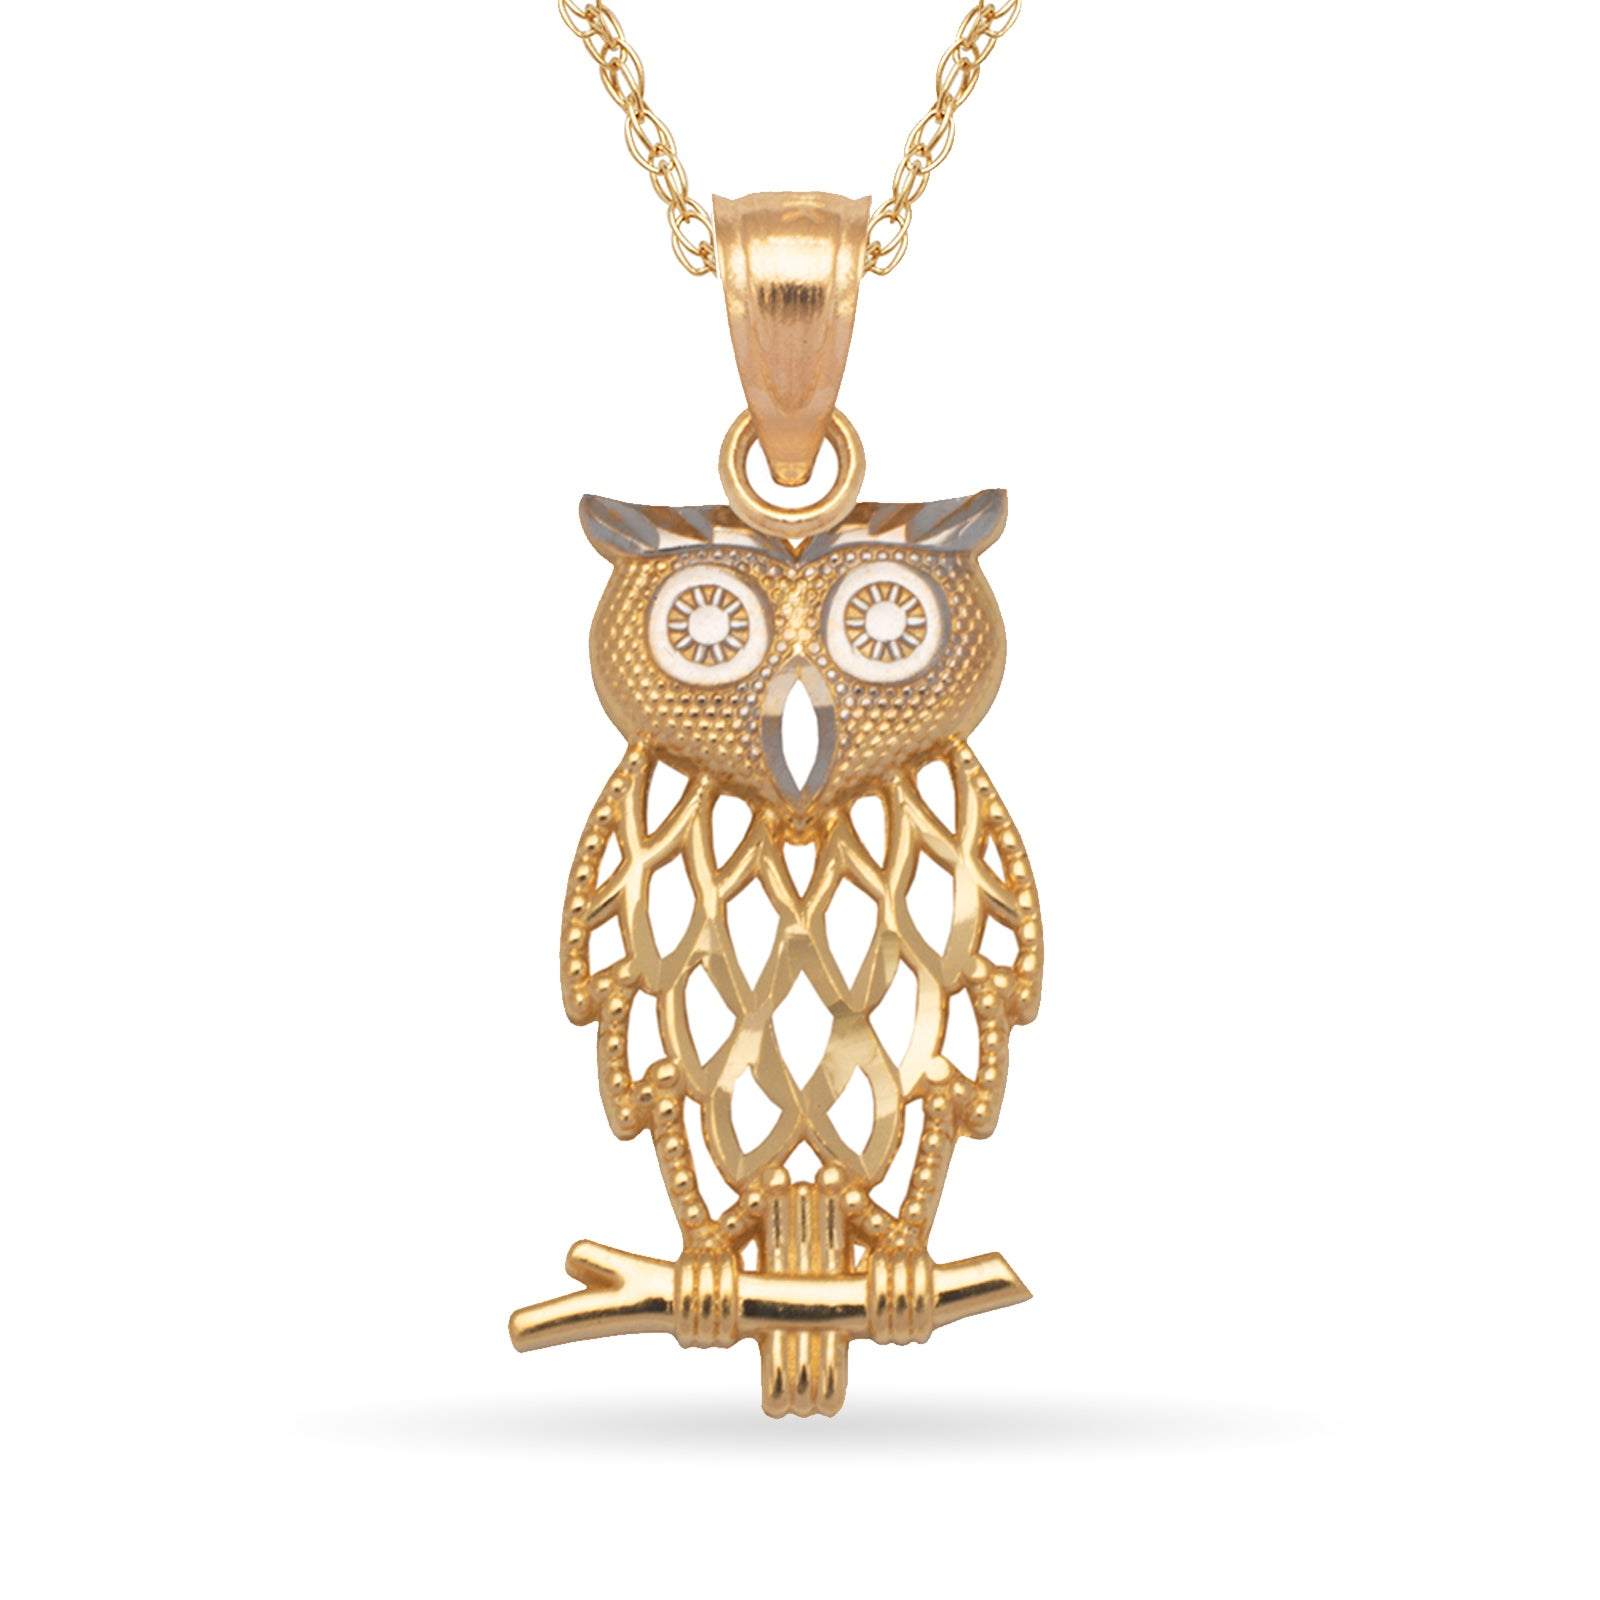 jewelry metallic lyst in designer tw s t macys w diamond owl pendant silver sterling ct necklace featured macy